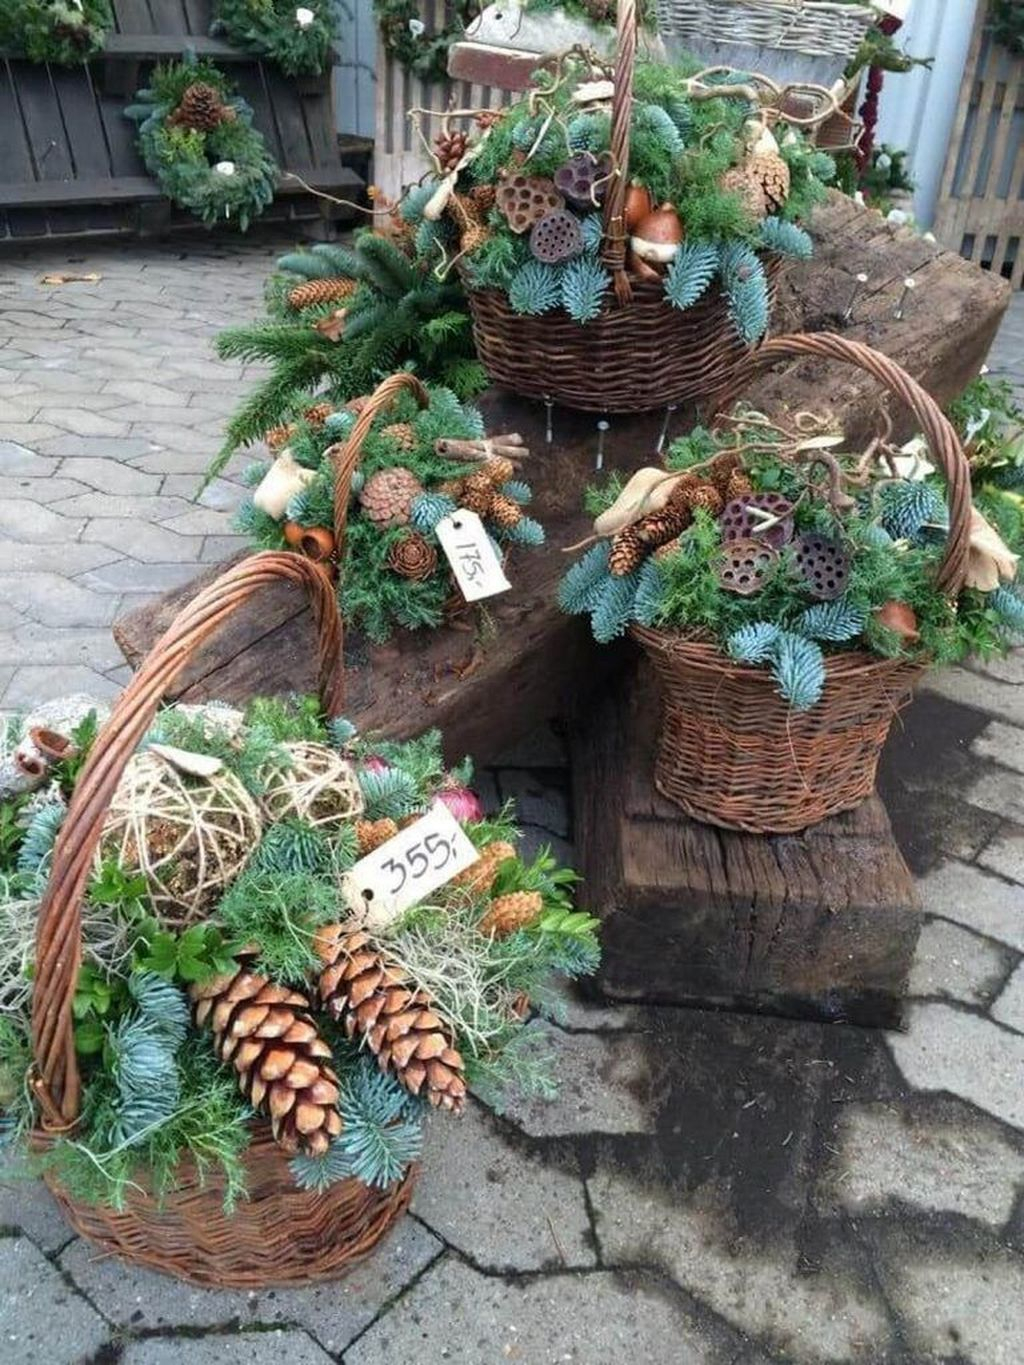 Marvelous Outdoor Holiday Planter Ideas To Beauty Porch Décor 42